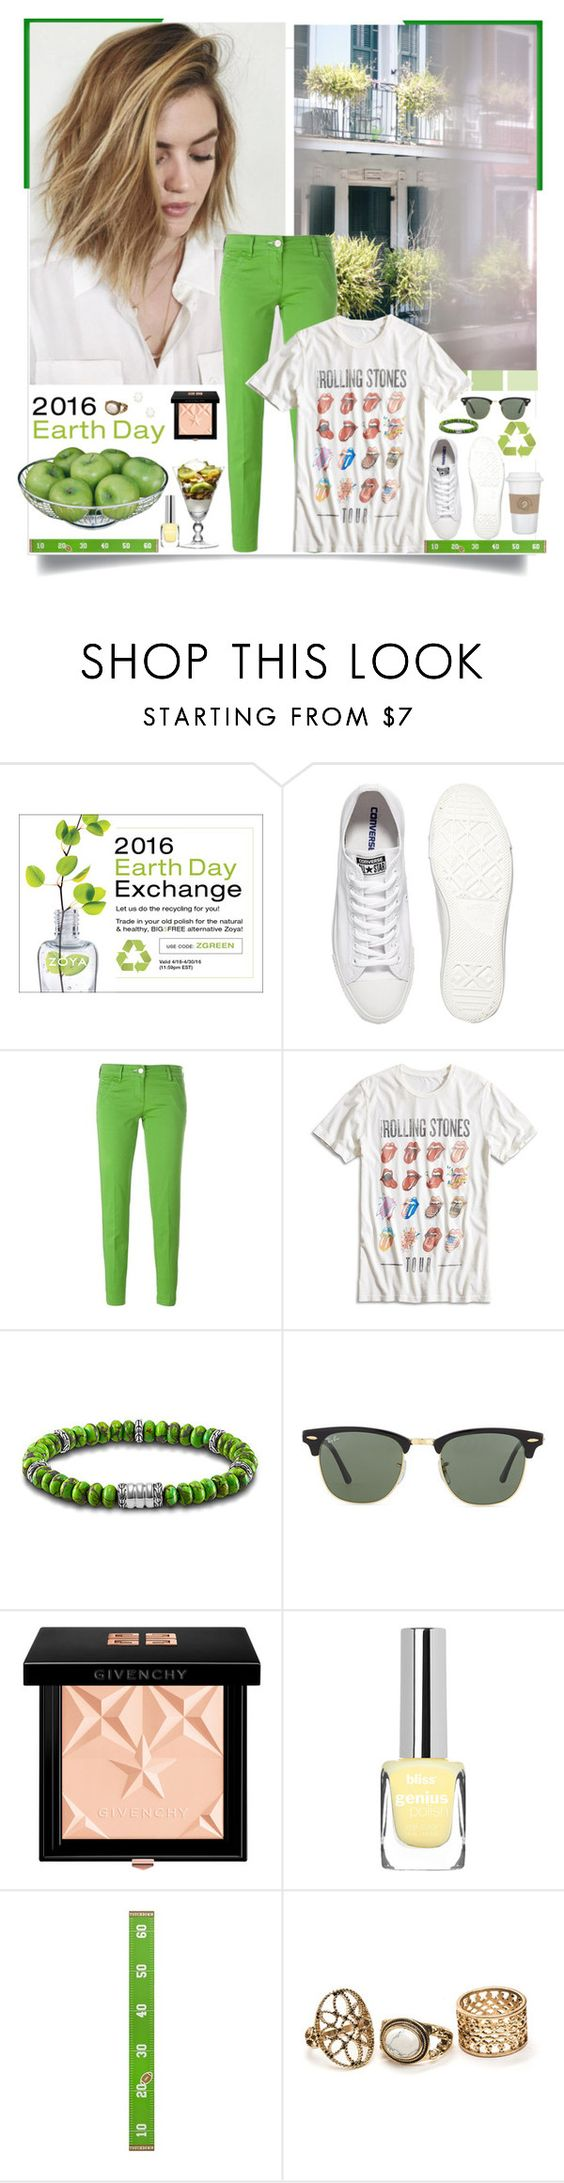 """Ecology in mind ^ (17.2)"" by red-fashion ❤ liked on Polyvore featuring Zoya, Thomsen Paris, Converse, Jacob Cohёn, Lucky Brand, John Hardy, Ray-Ban, Givenchy, Kendra Scott and crazyforfashion"